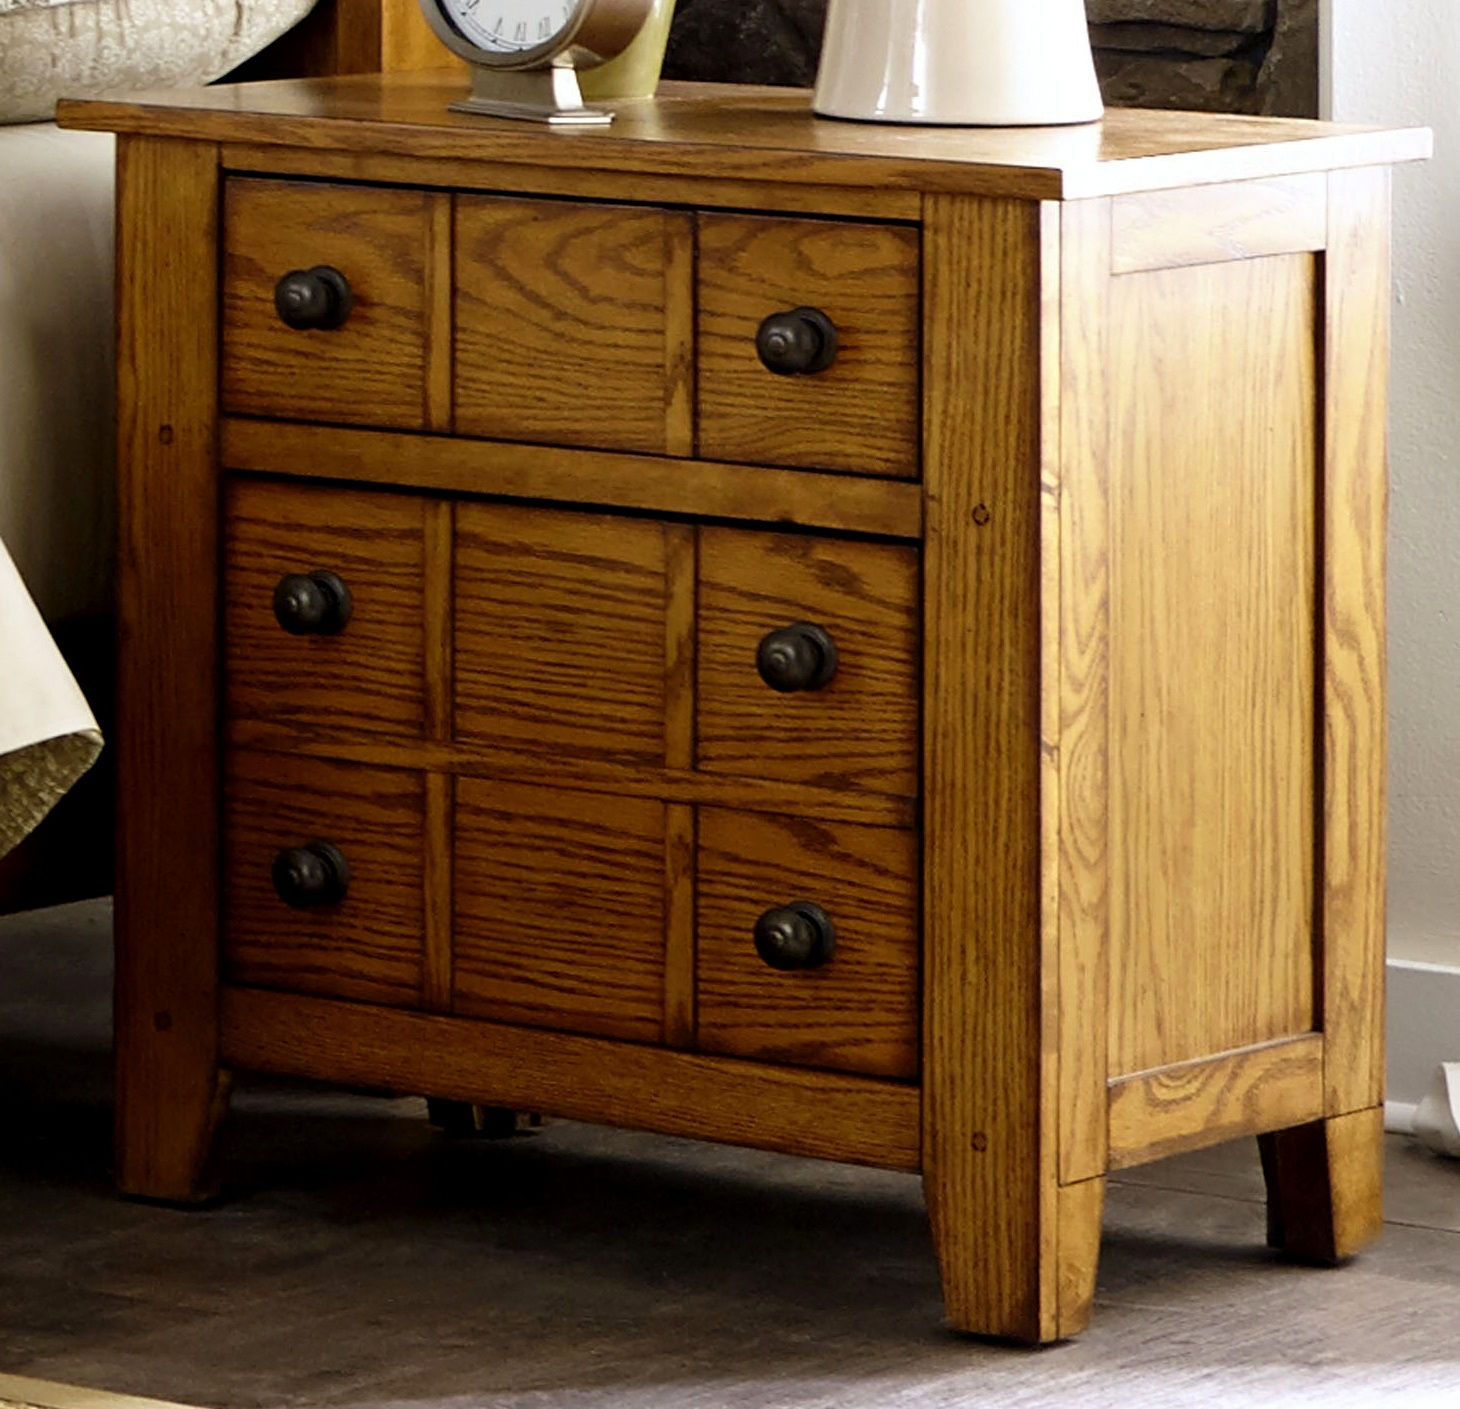 American design furniture by buy american cherry for American bedroom furniture designs